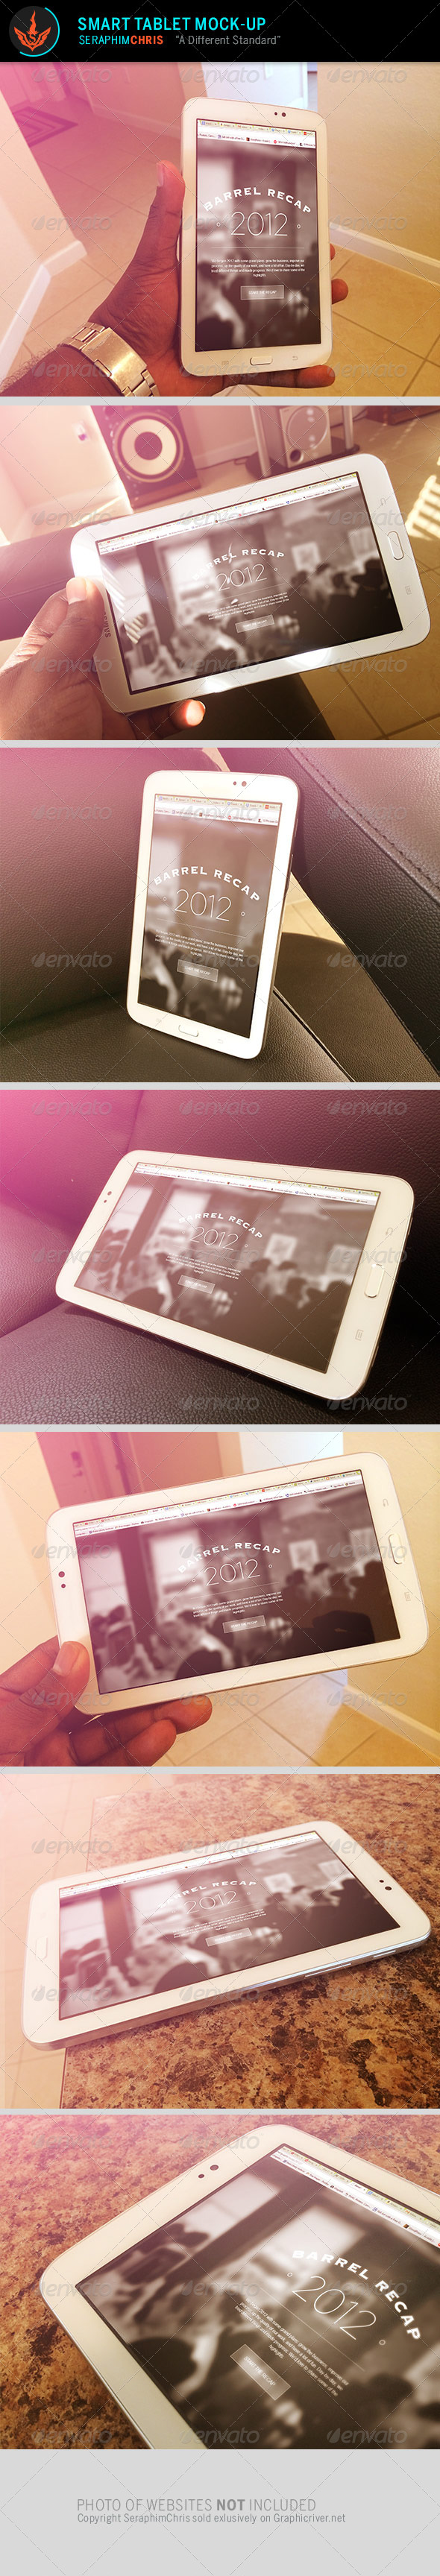 Smart Tablet Mock Up Template